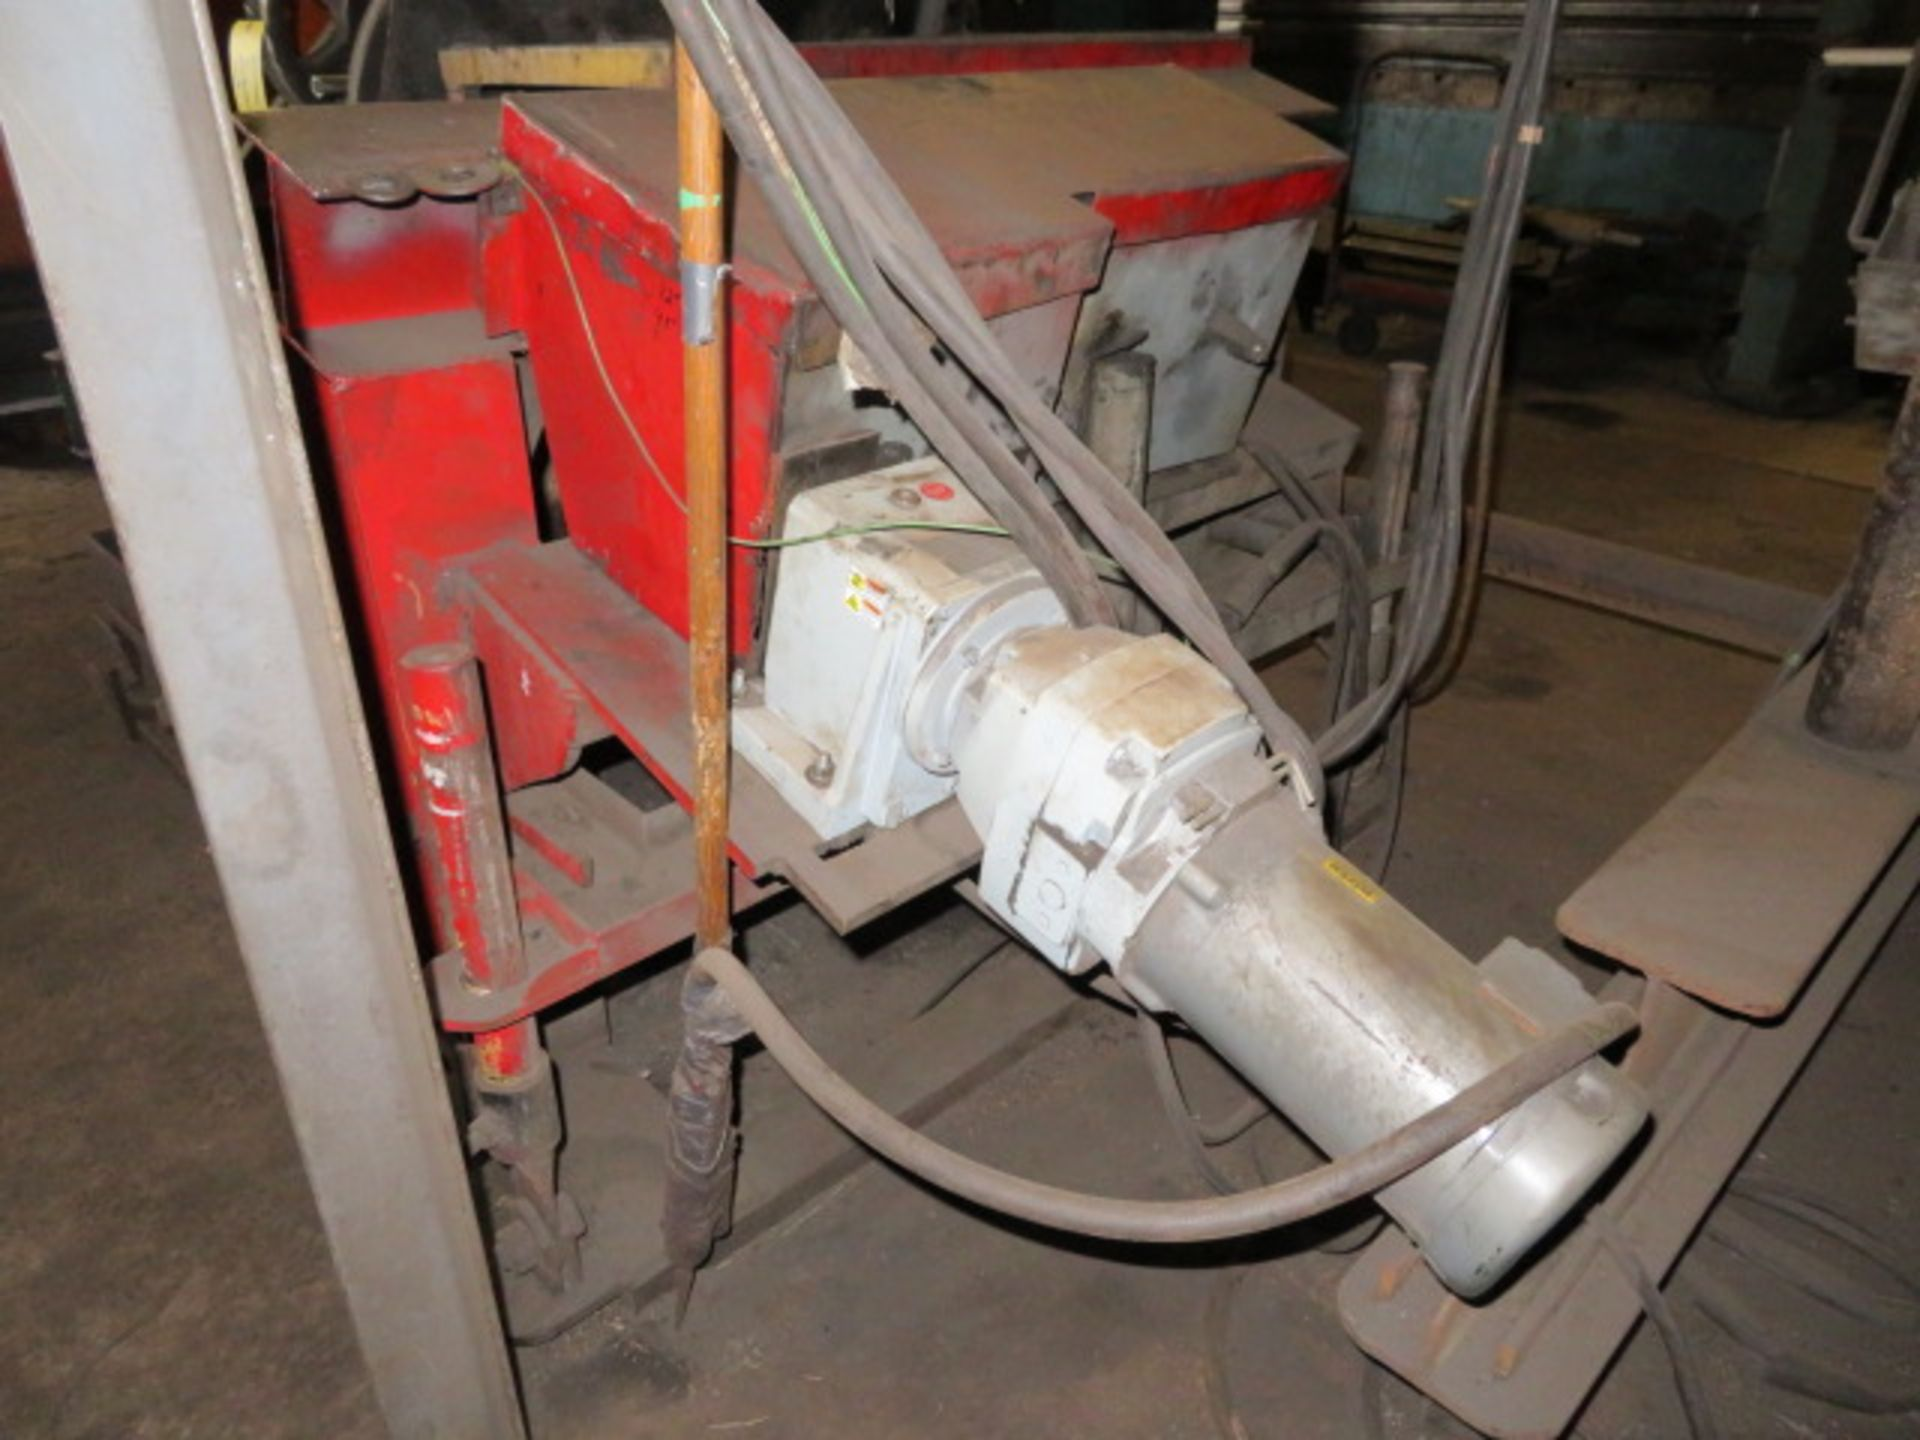 Lot 47 - SUB-ARC WELDING UNIT W/VARIABLE SPEED ROTATING UNIT, MOBILE GANTRY FRAME, LINCOLN NA-3N AUTO WIRE